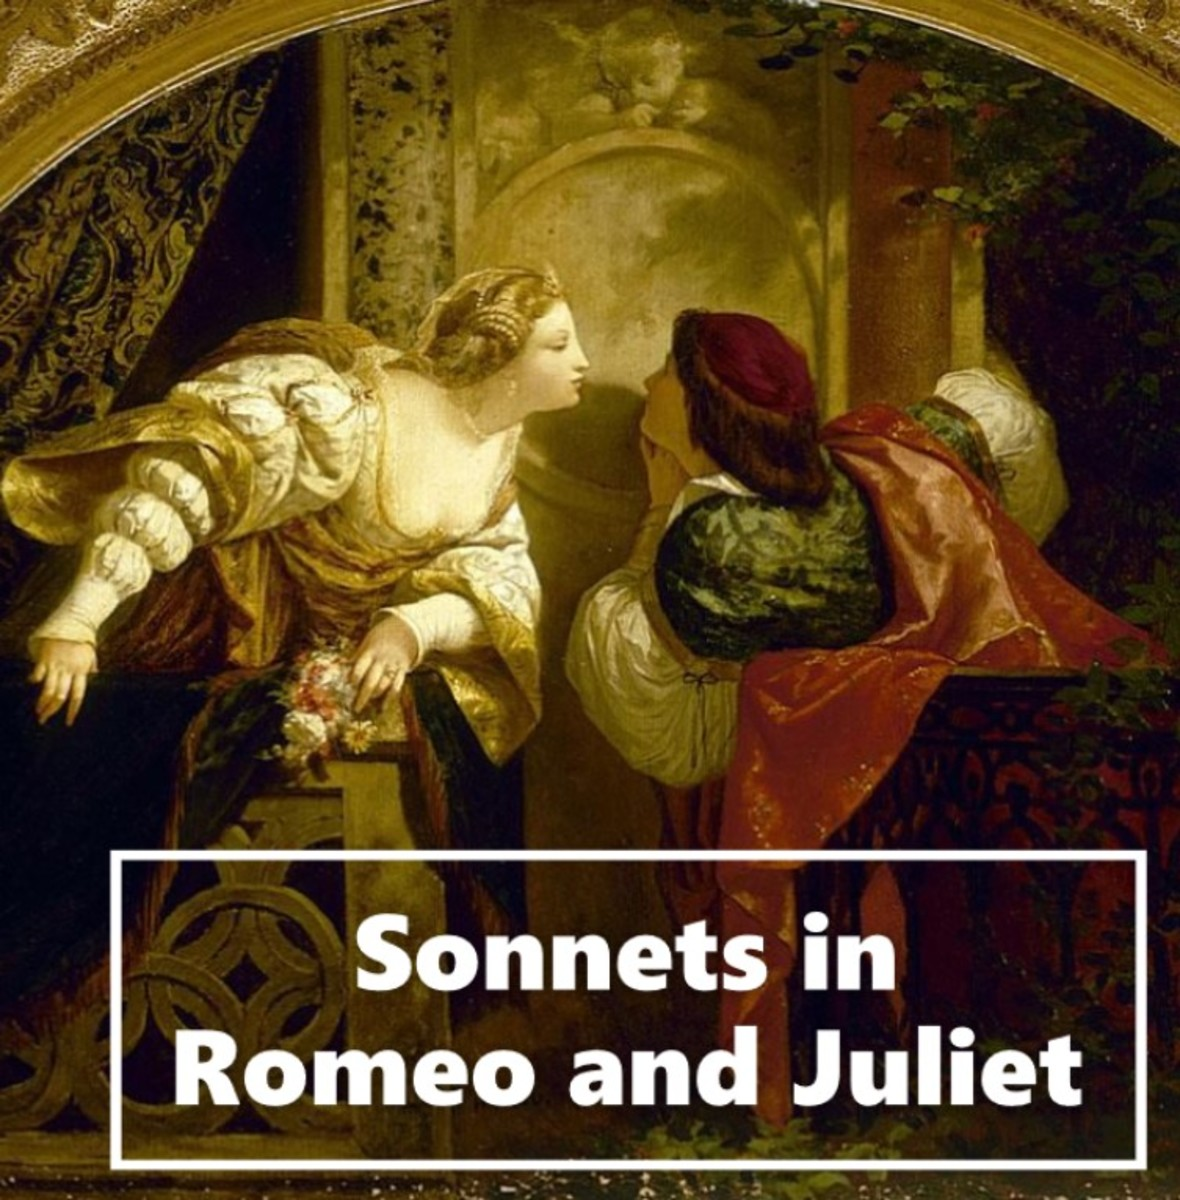 Three Sonnets in Romeo and Juliet